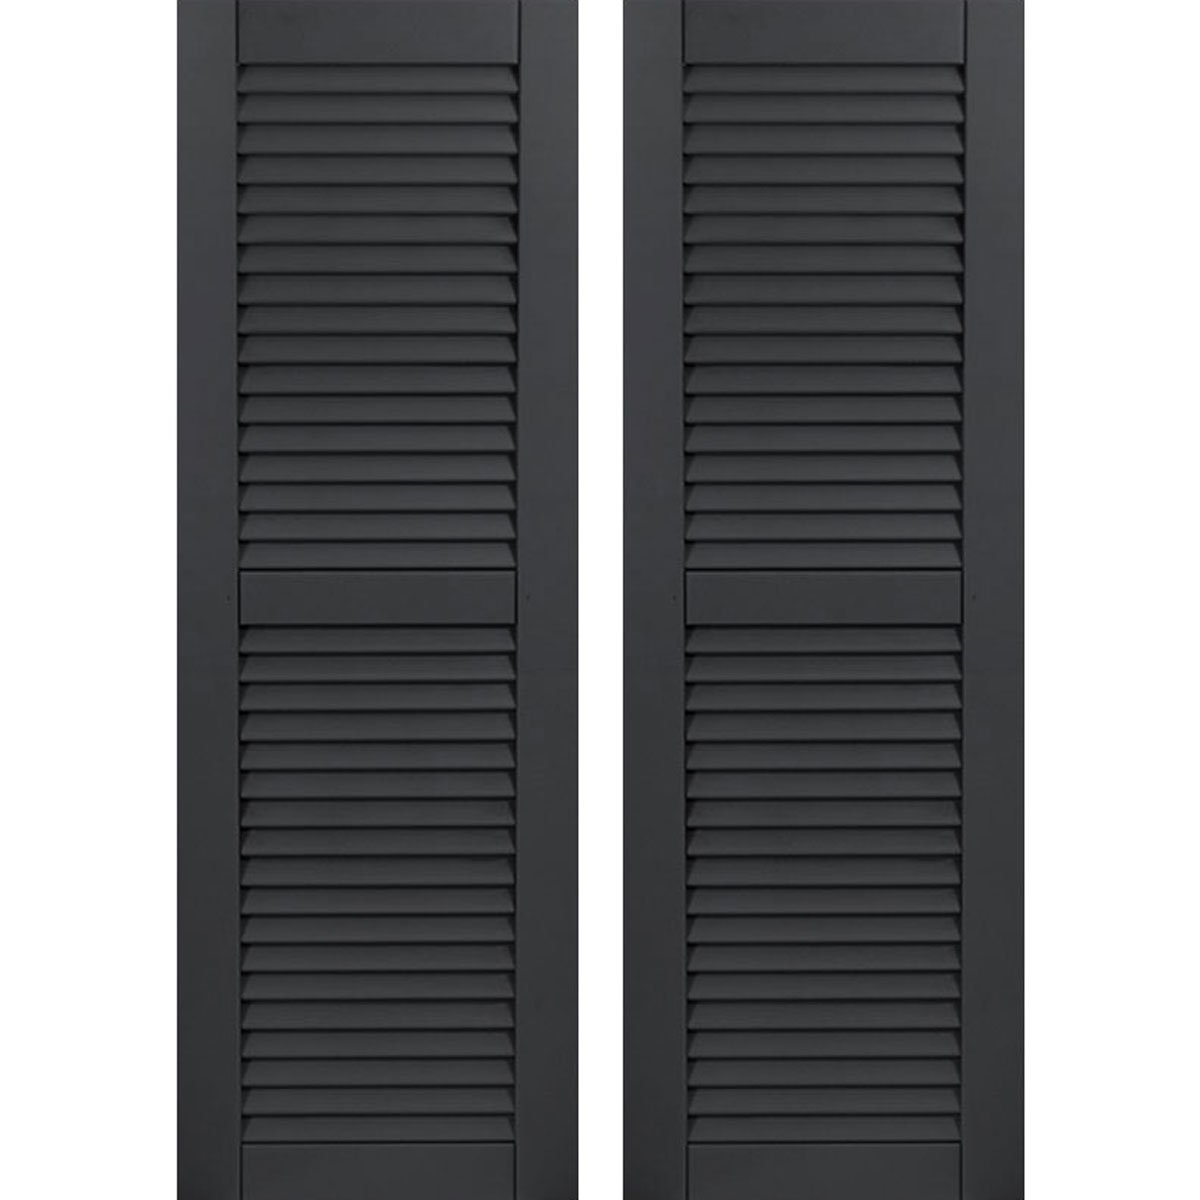 15W x 53H Ekena Millwork CWL15X053BLC Exterior Composite Wood Louvered Shutters with Installation Brackets Per Pair Black